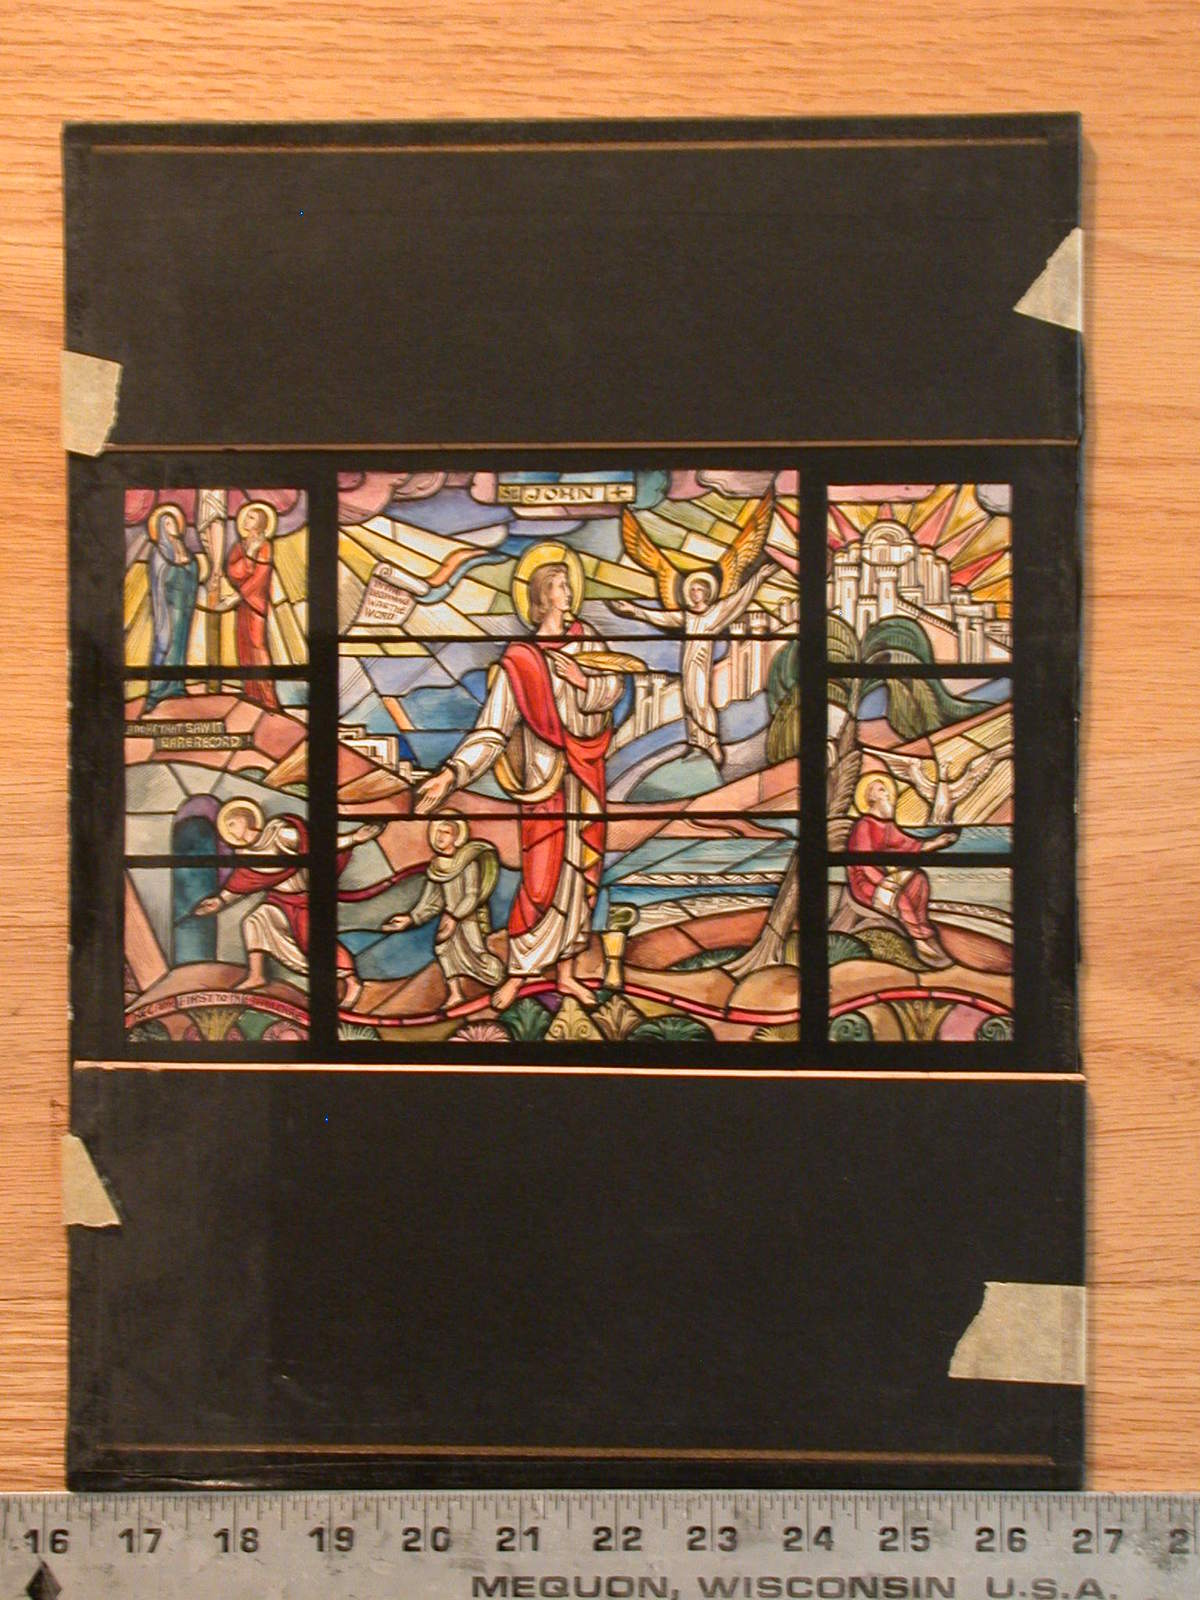 [Design drawing for stained glass window showing St John, gospel writer, at center with quill, snake in chalice, looking to angel, before conflated narrative scenes of life and events, and Jerusalem]